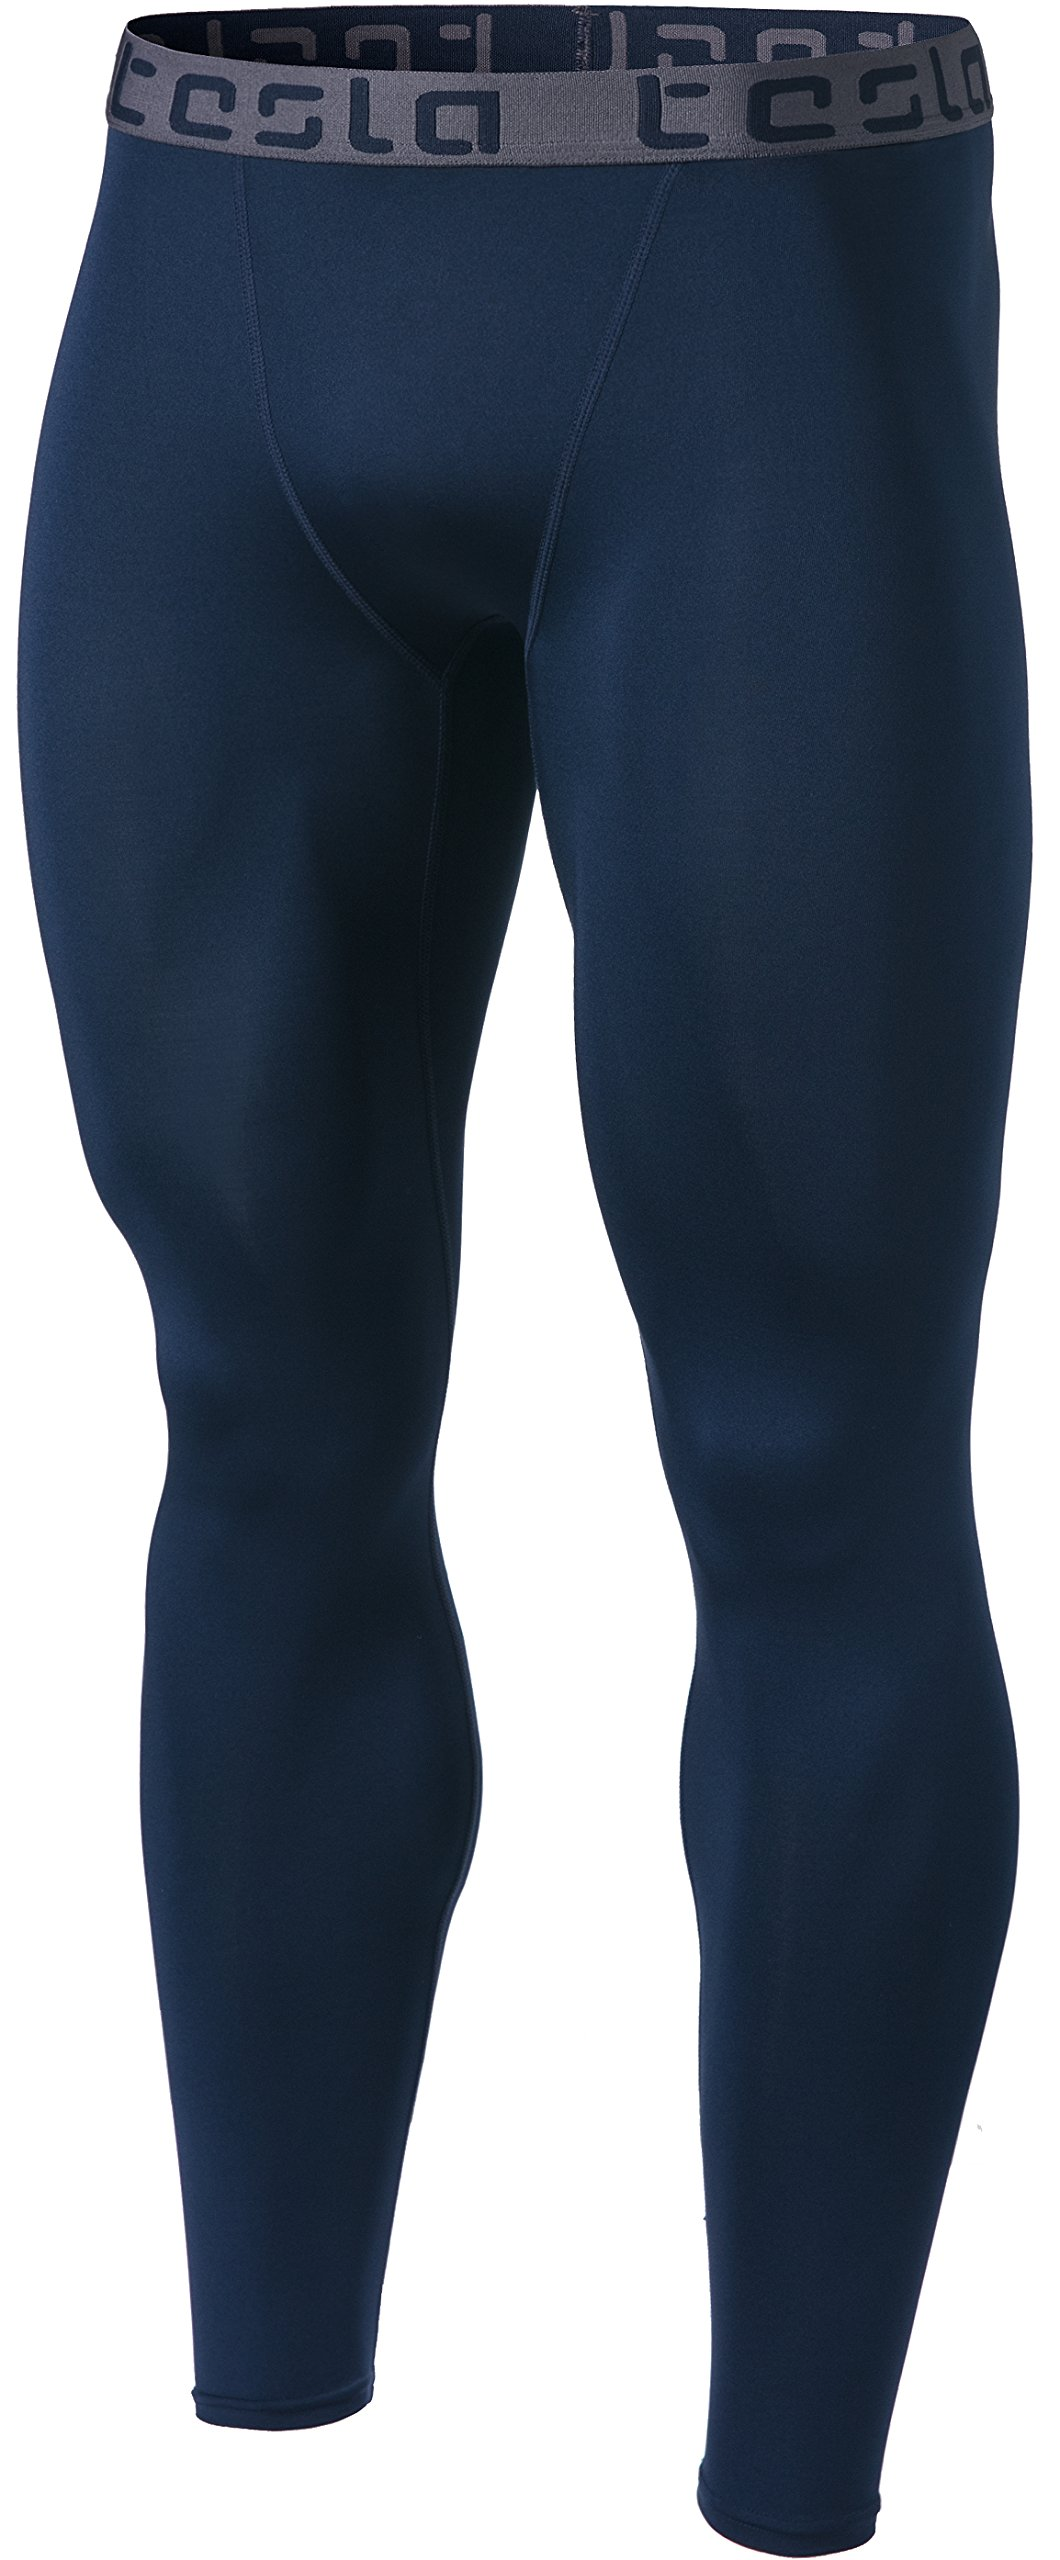 TSLA Men's Compression Pants Running Baselayer Cool Dry Sports Tights, Basic(mup09) - Navy, 2X-Large by TSLA